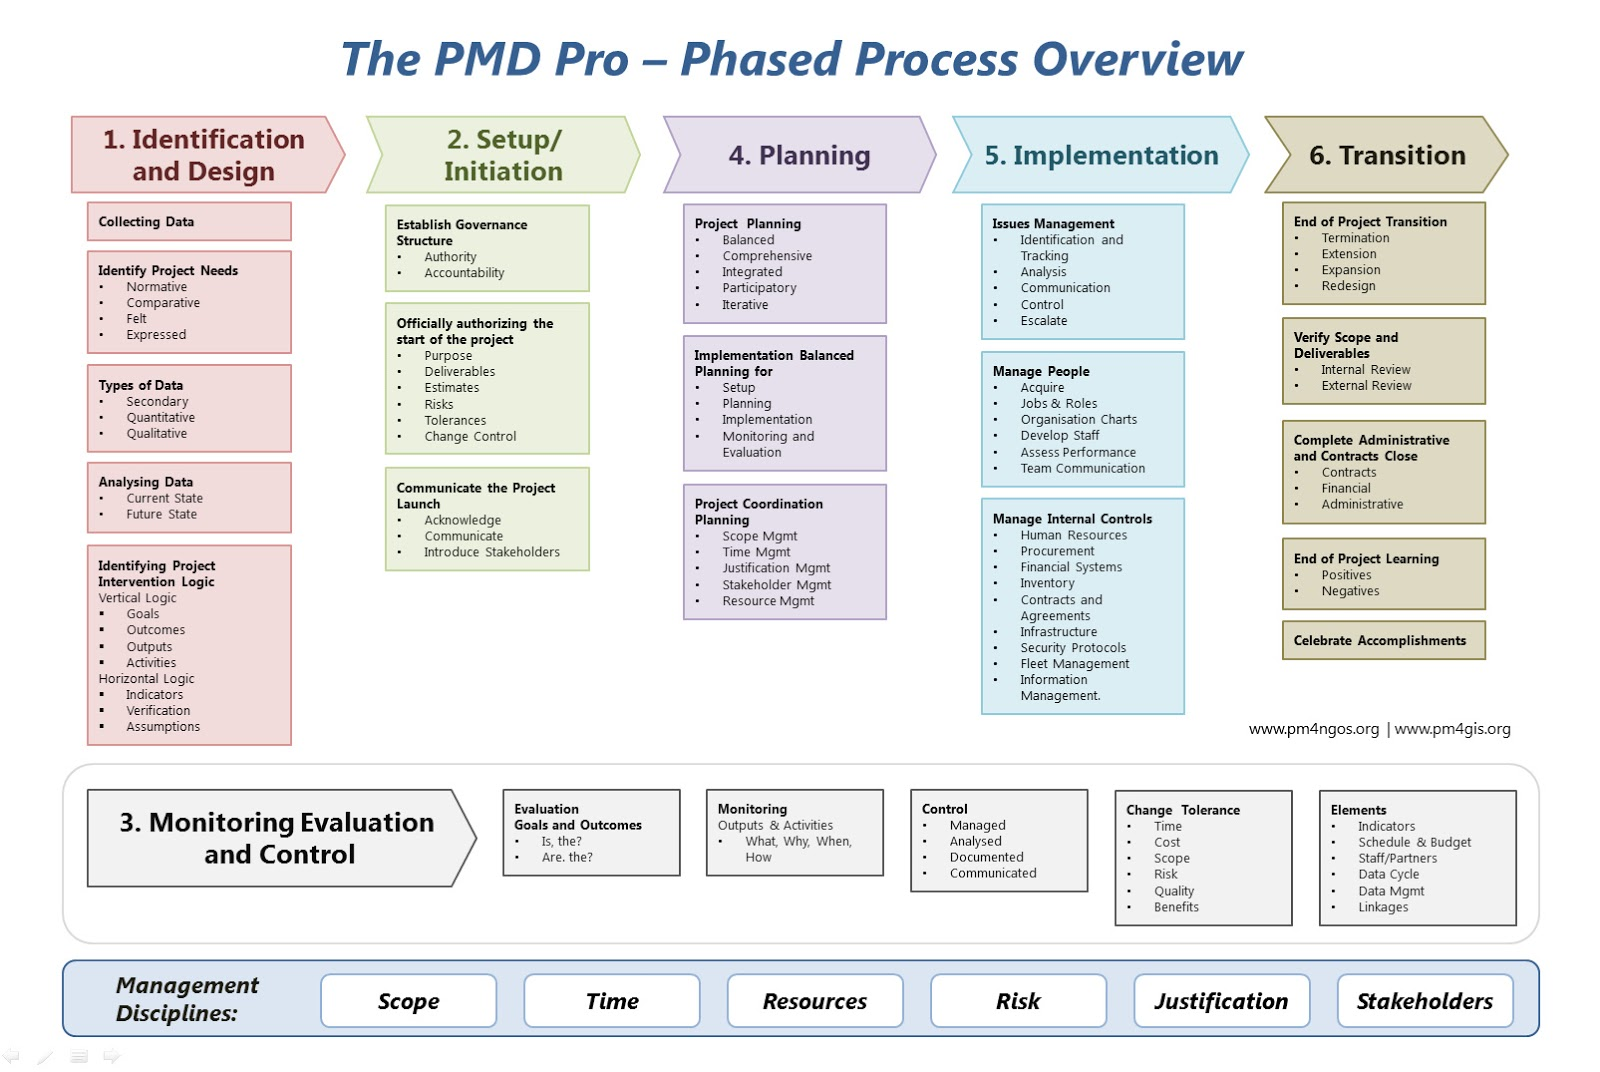 the pmd pro framework 6 phase process overview gis and project the pmd pro framework 6 phase process overview